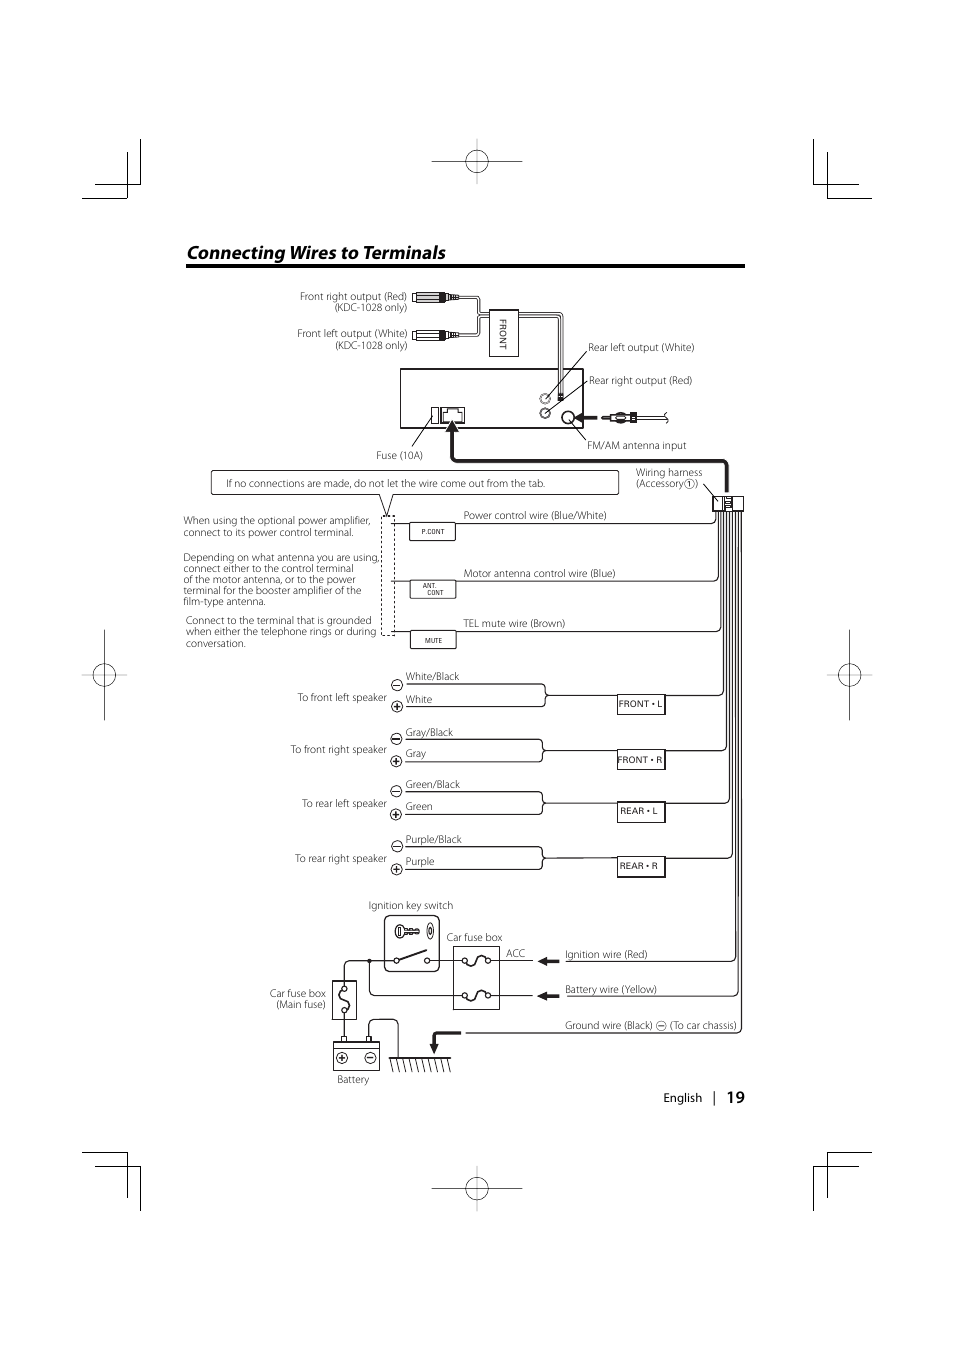 kenwood kdc 128cr page19 kenwood kdc 2019 wiring diagram kenwood wiring diagrams collection kenwood ddx418 wiring harness diagram at alyssarenee.co